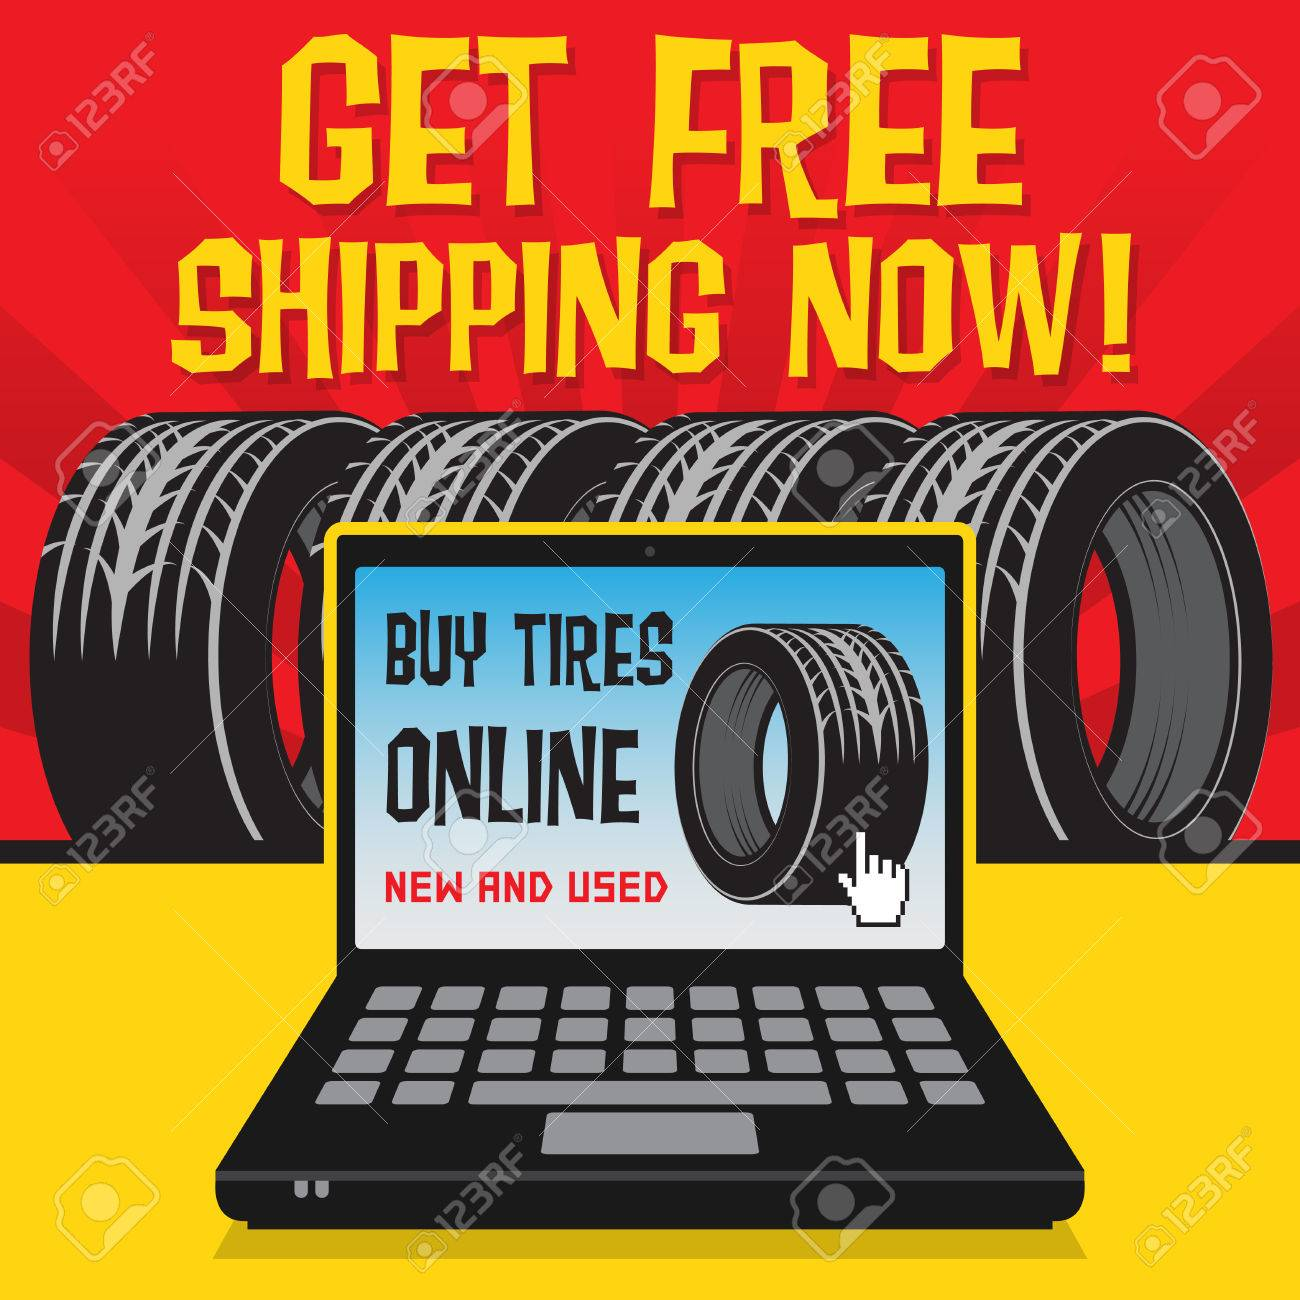 Buy Tires Online >> Vintage Tire Service Or Garage Poster With Text Buy Tires Online